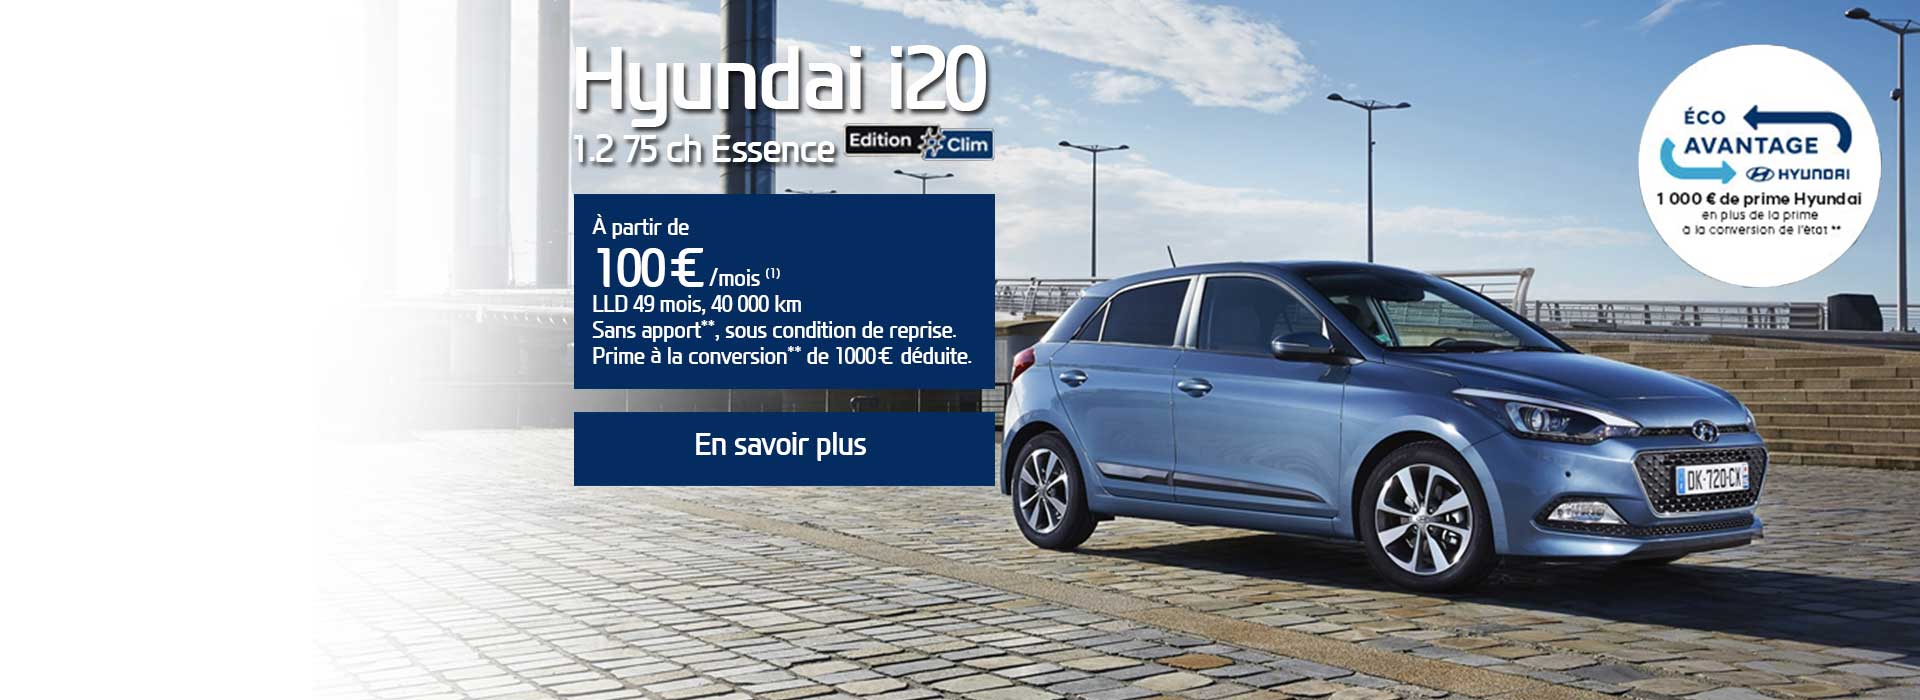 hyundai strasbourg vente voiture neuve vehicule occasion. Black Bedroom Furniture Sets. Home Design Ideas